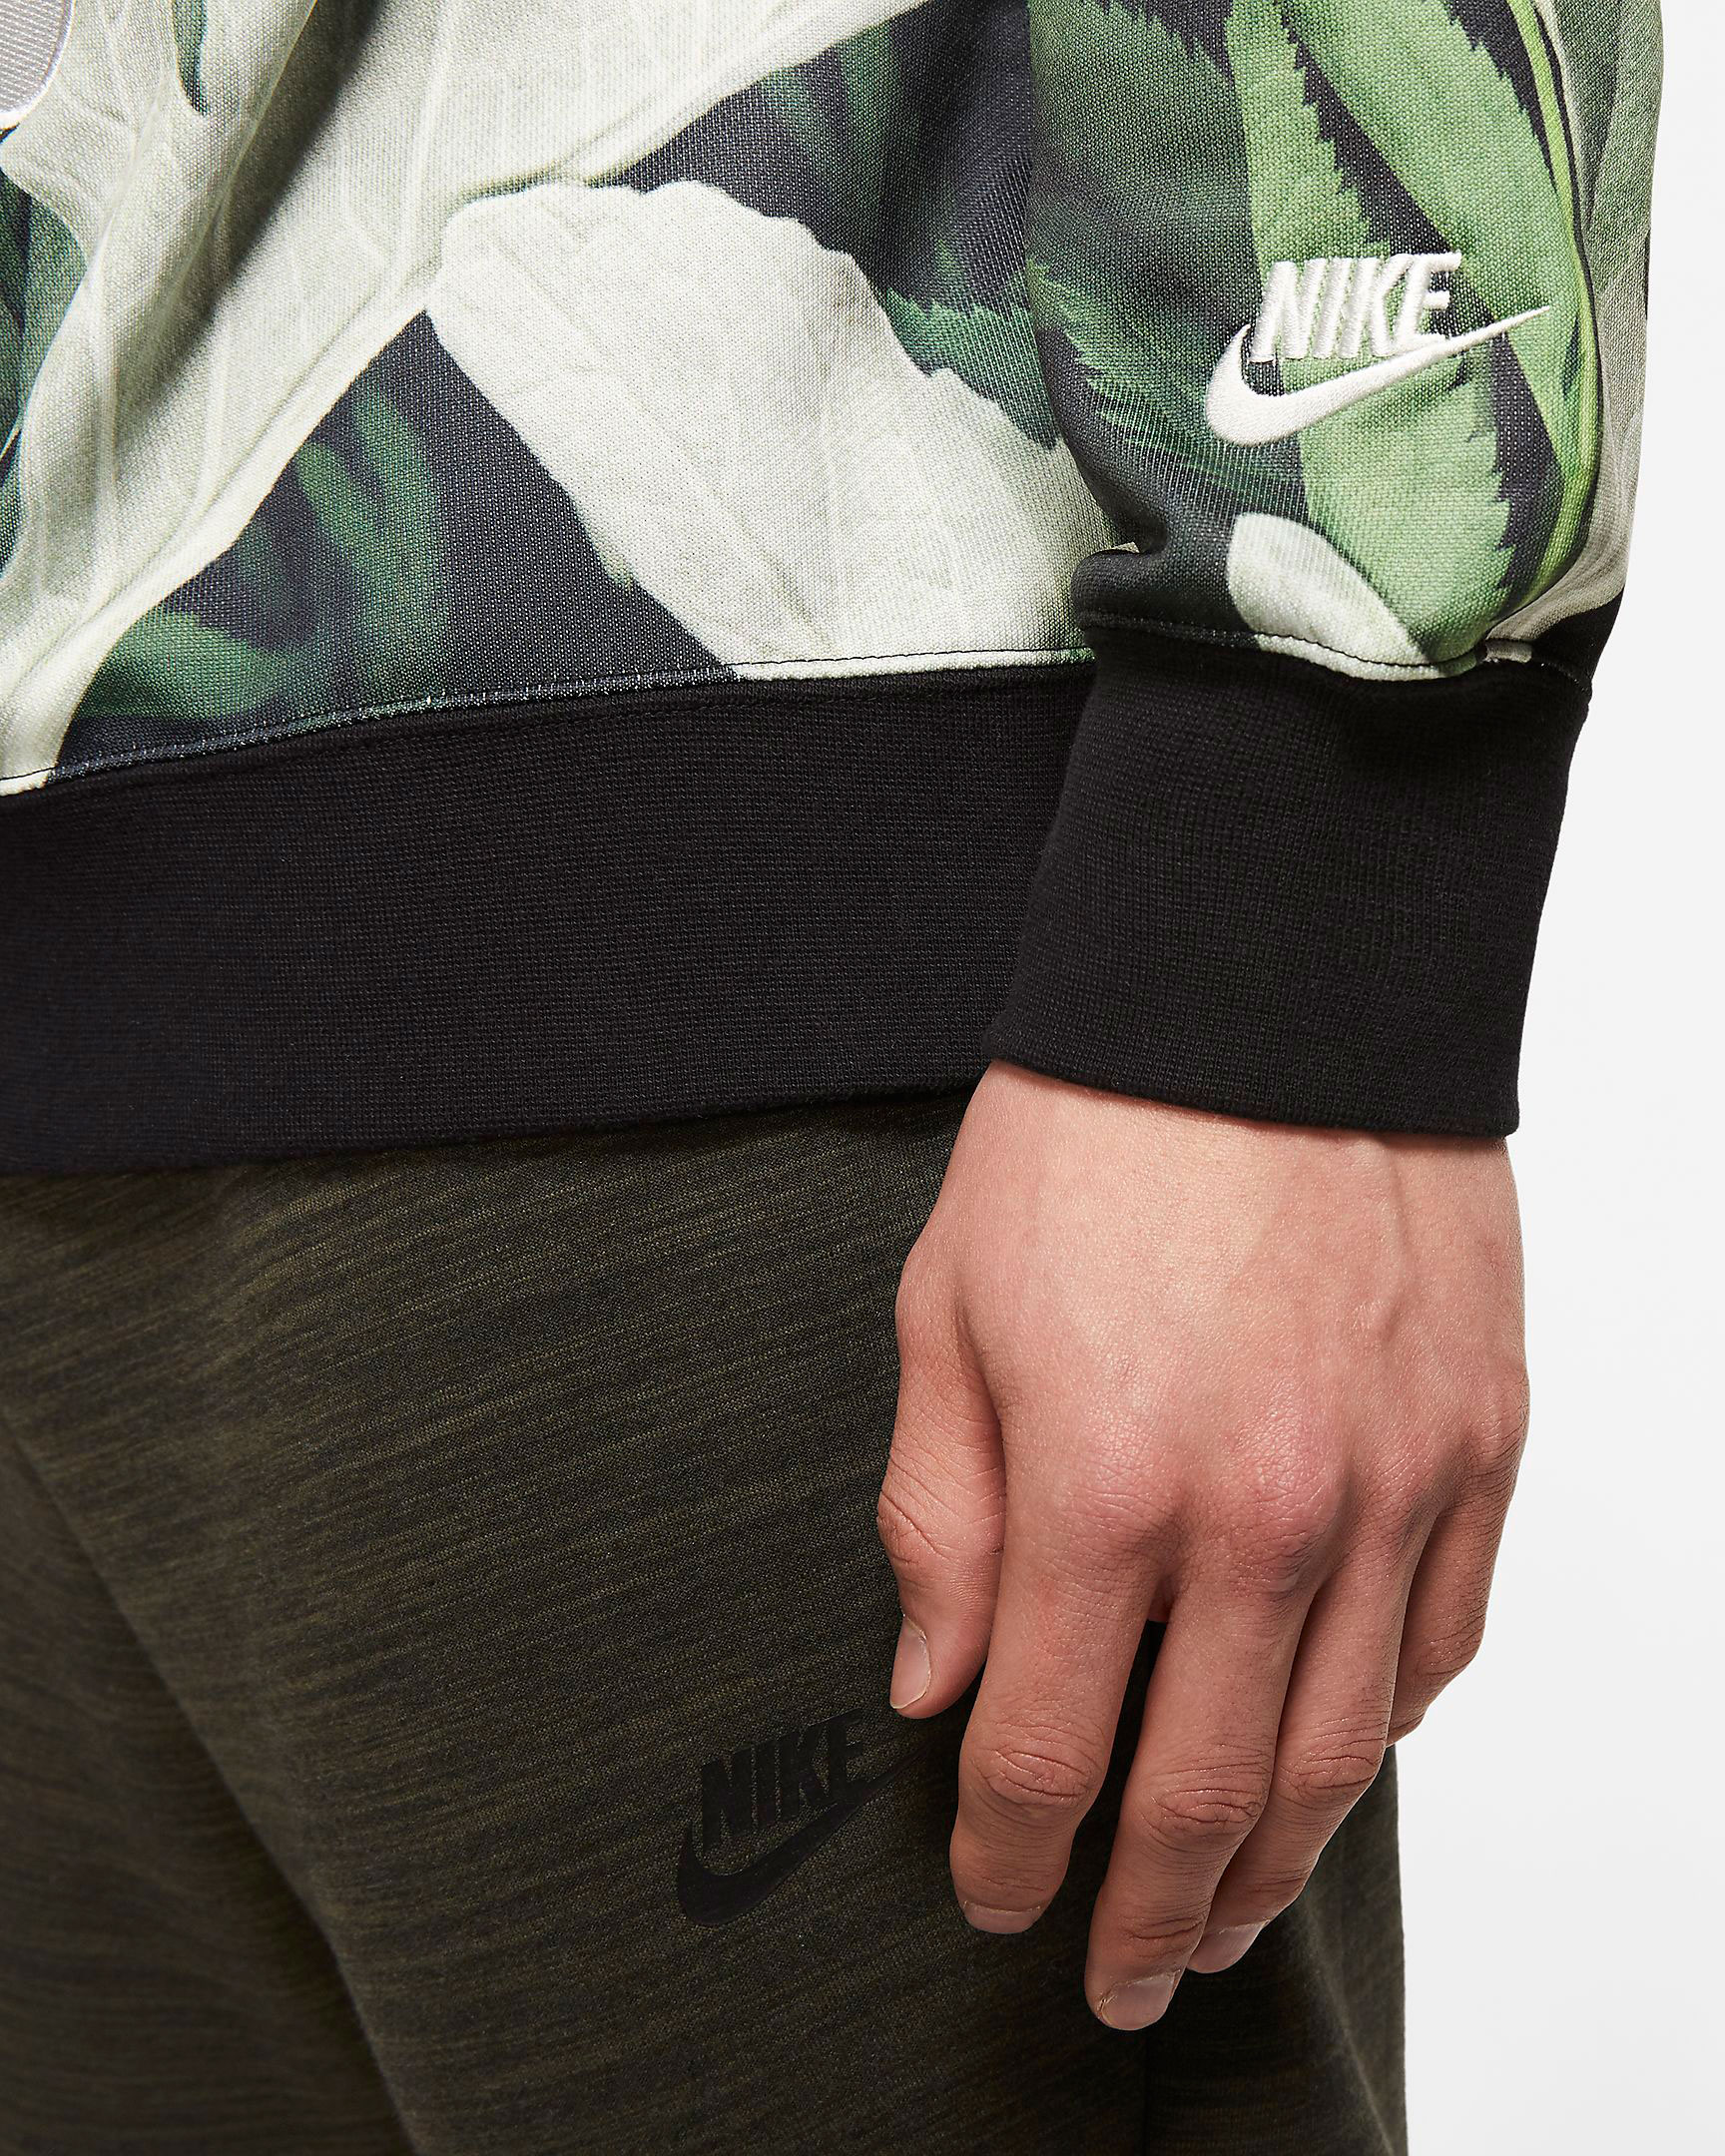 nike-just-do-it-floral-green-sweatshirt-4